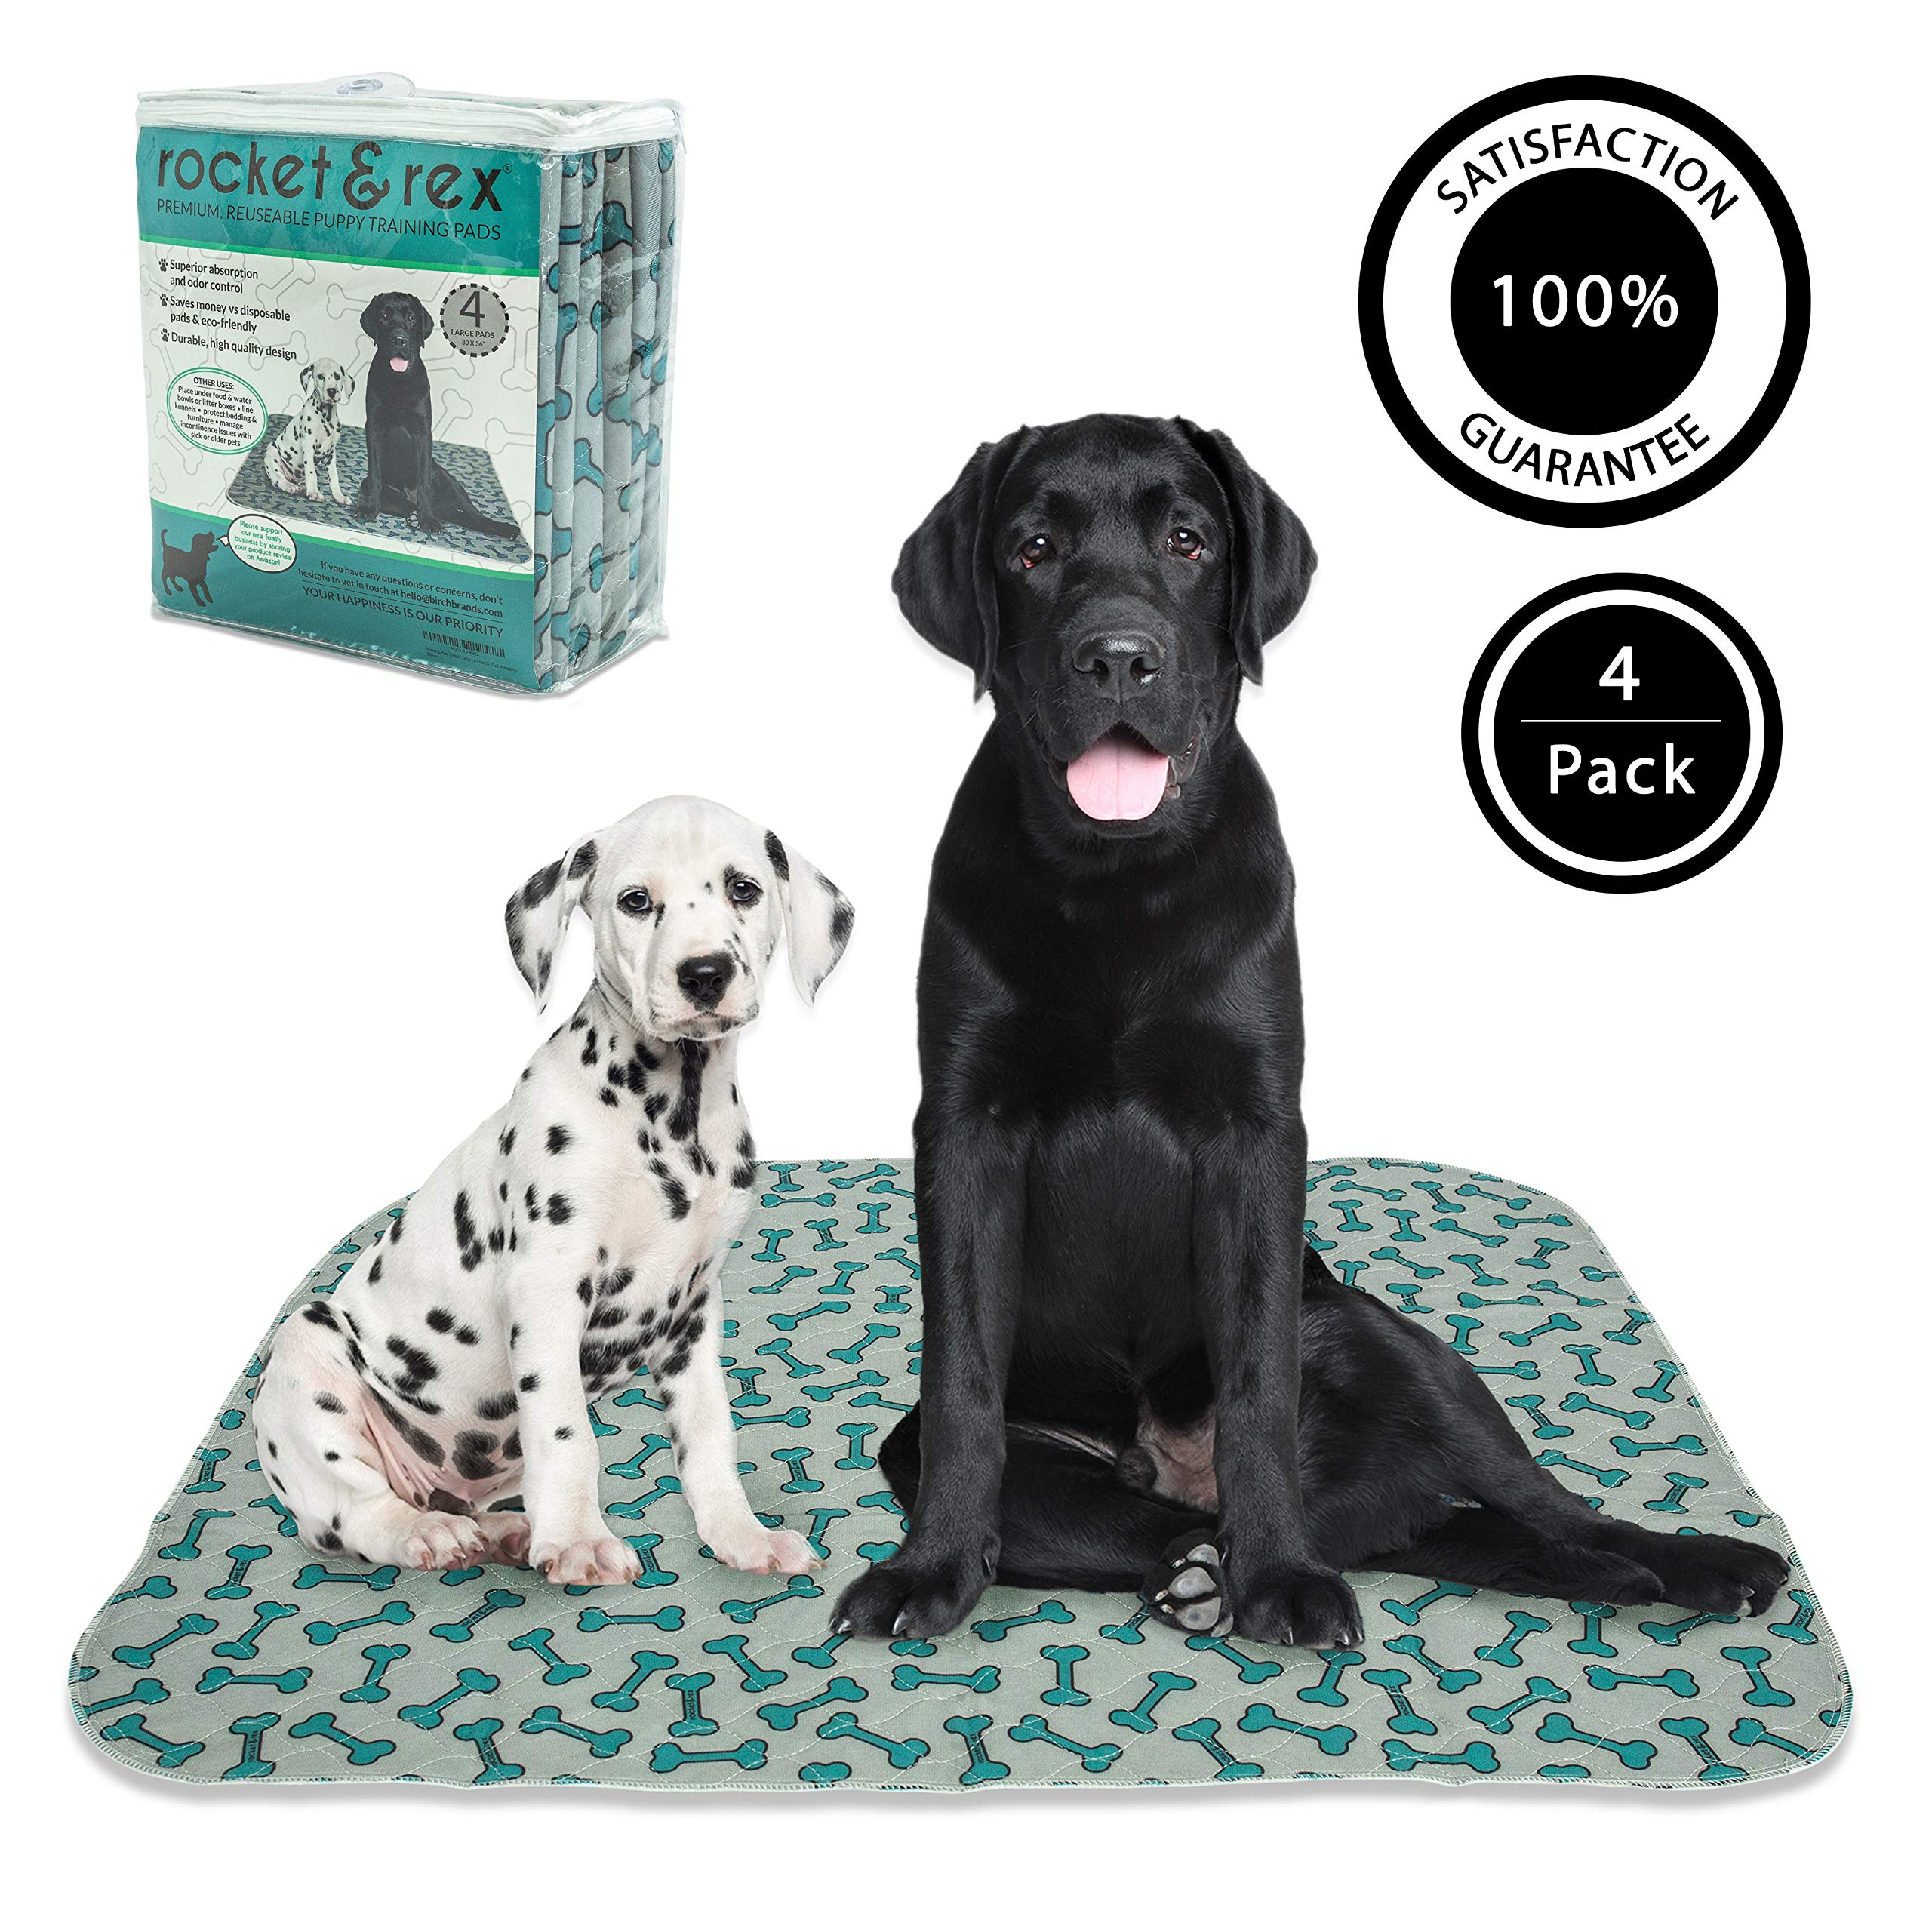 rocket & rex Washable, Reusable, Puppy Pee Pads, Pet Training Waterproof Pads. 4-Pack (x-Large). Leak-Proof and Absorbent. Whelping, Incontinence, Travel, Bed Wetting, Mattress Protector.